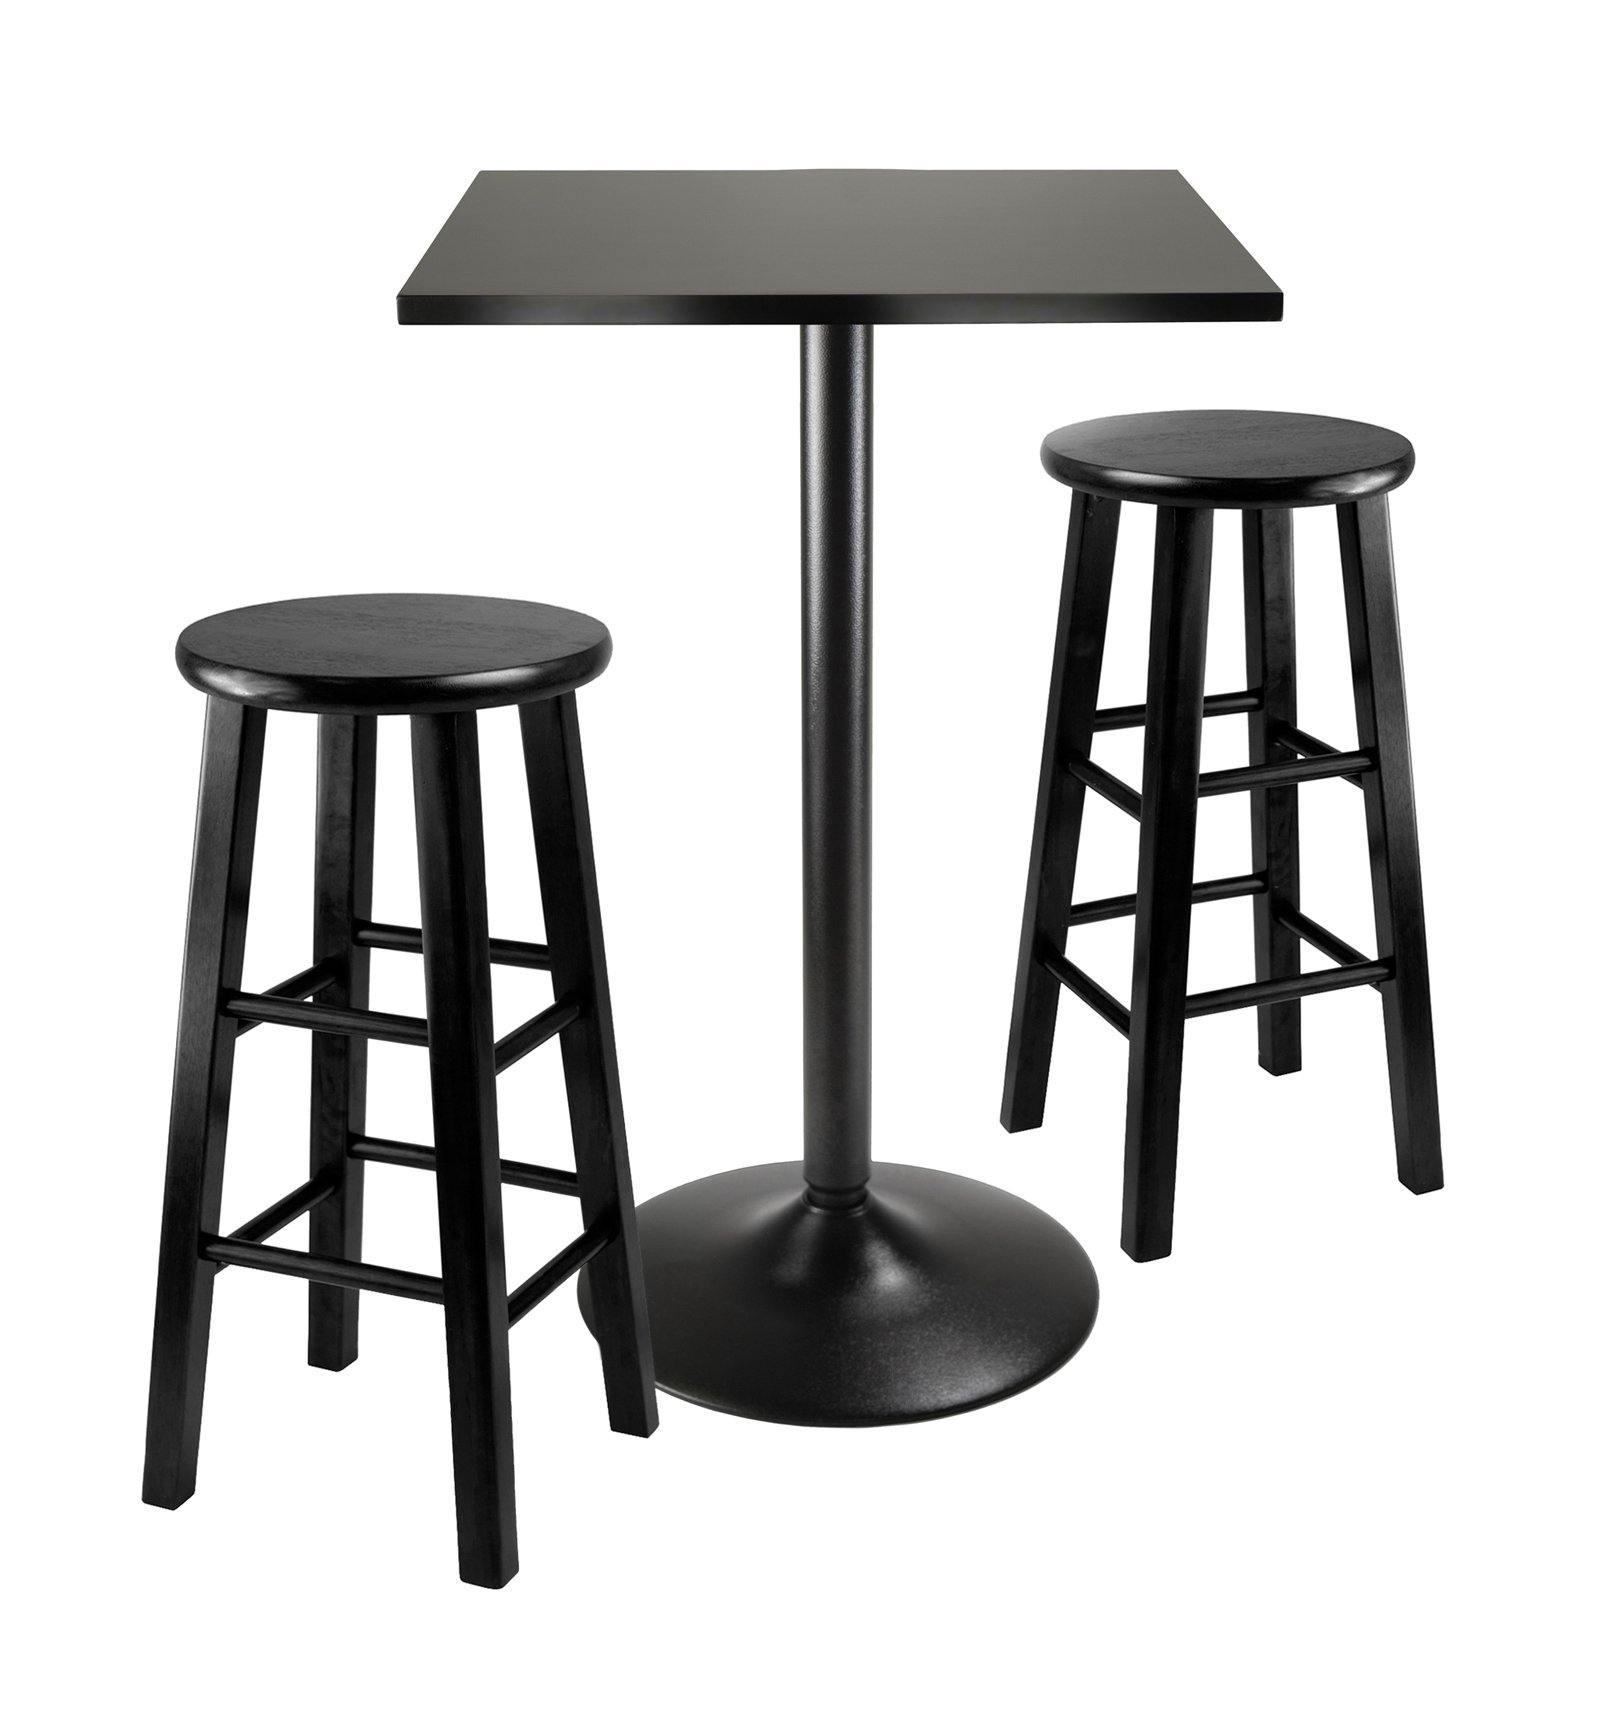 3Pc Counter Height Dining Set, Black Square Table Top and Black Metal Legs with 2 Wood Stools - My USA Furniture